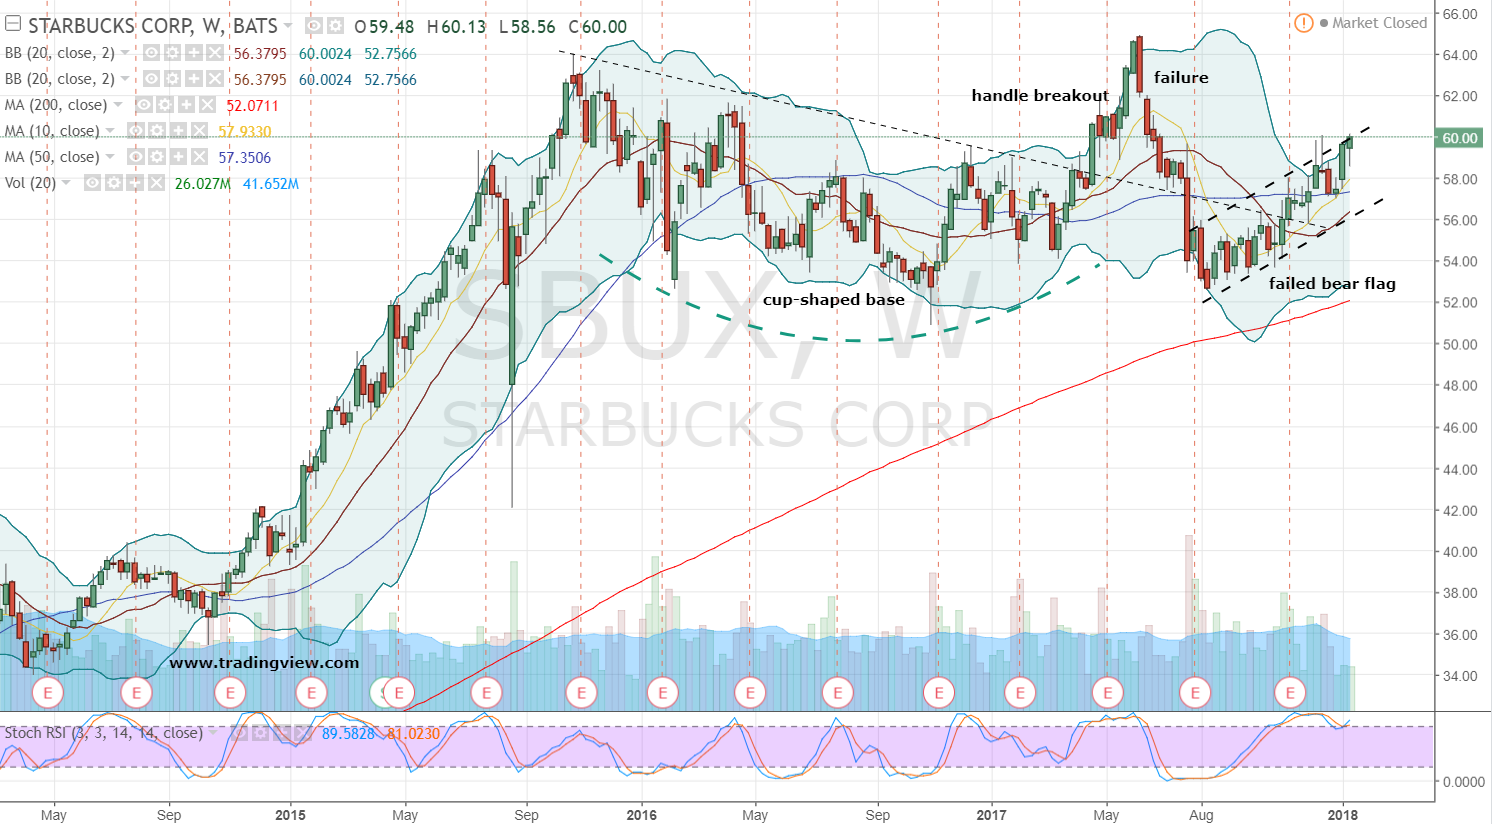 Starbucks Corp (NASDAQ:SBUX) Institutional Investor Sentiment